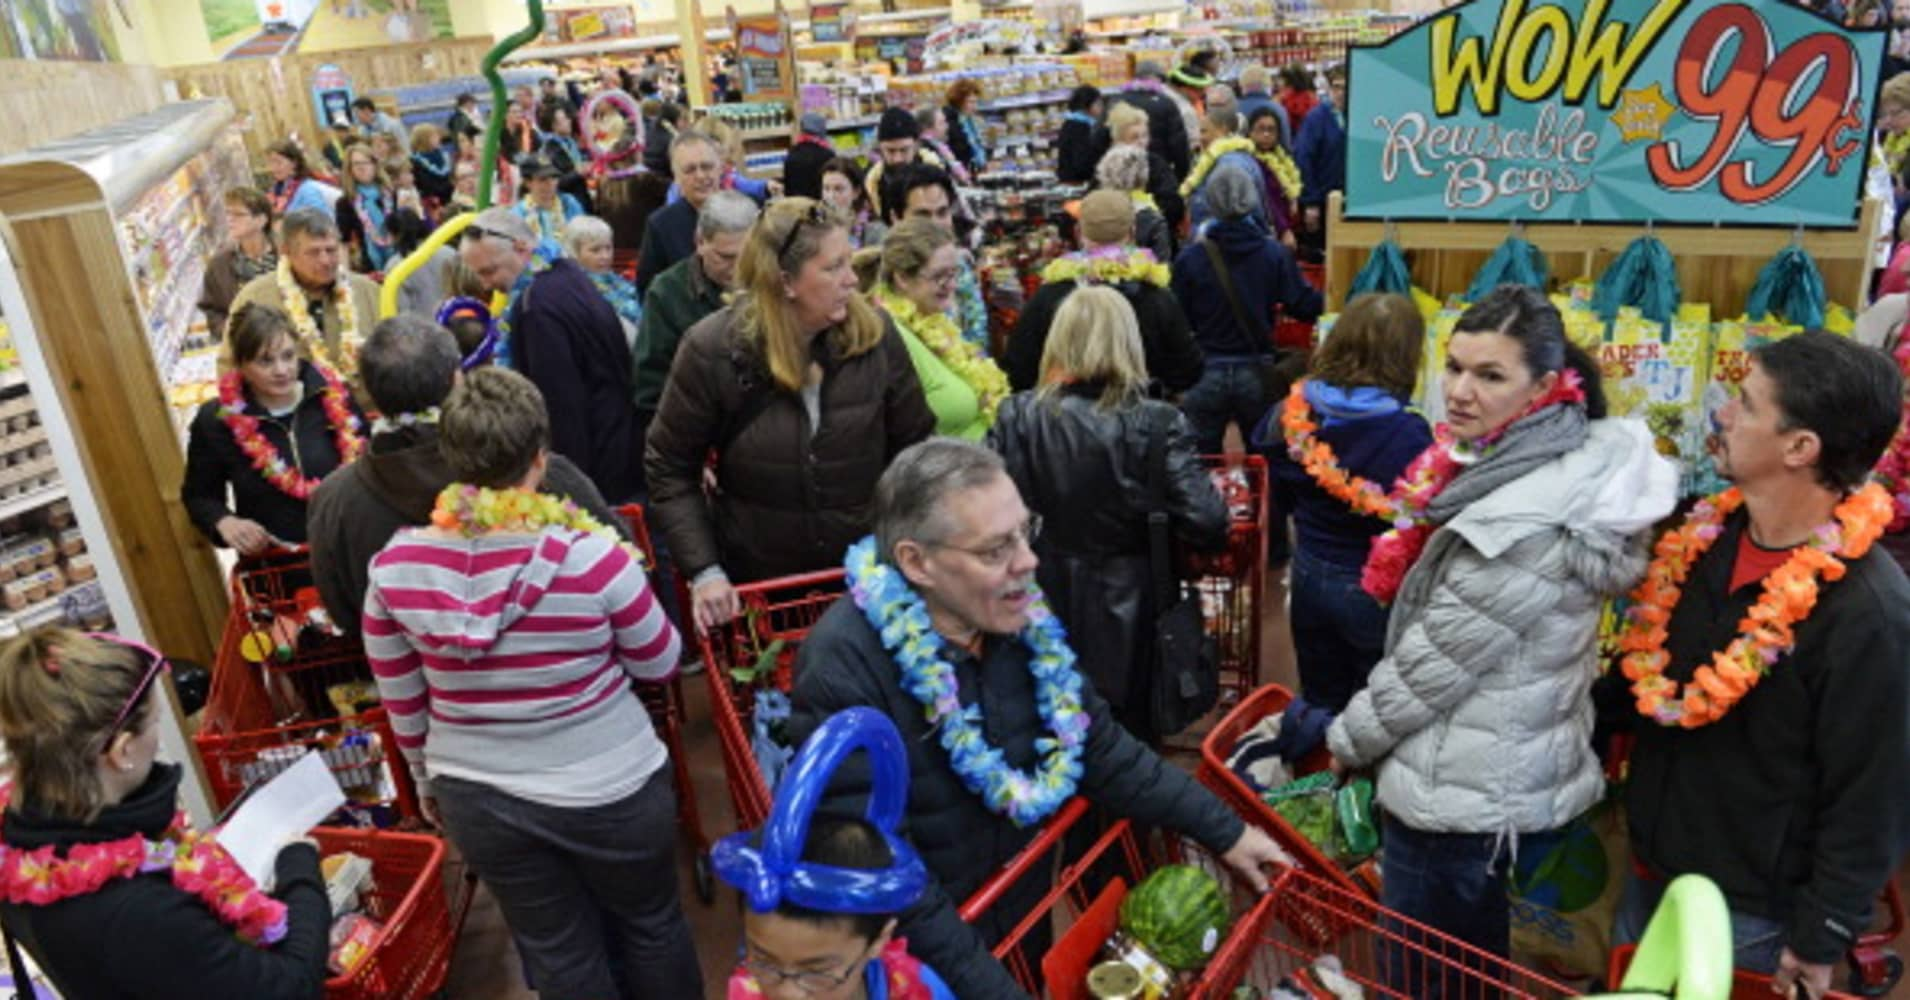 People crowd into the new Trader Joe's, located on Colorado Blvd. and East 8th Avenue in Denver, for the grand opening of specialty grocer.